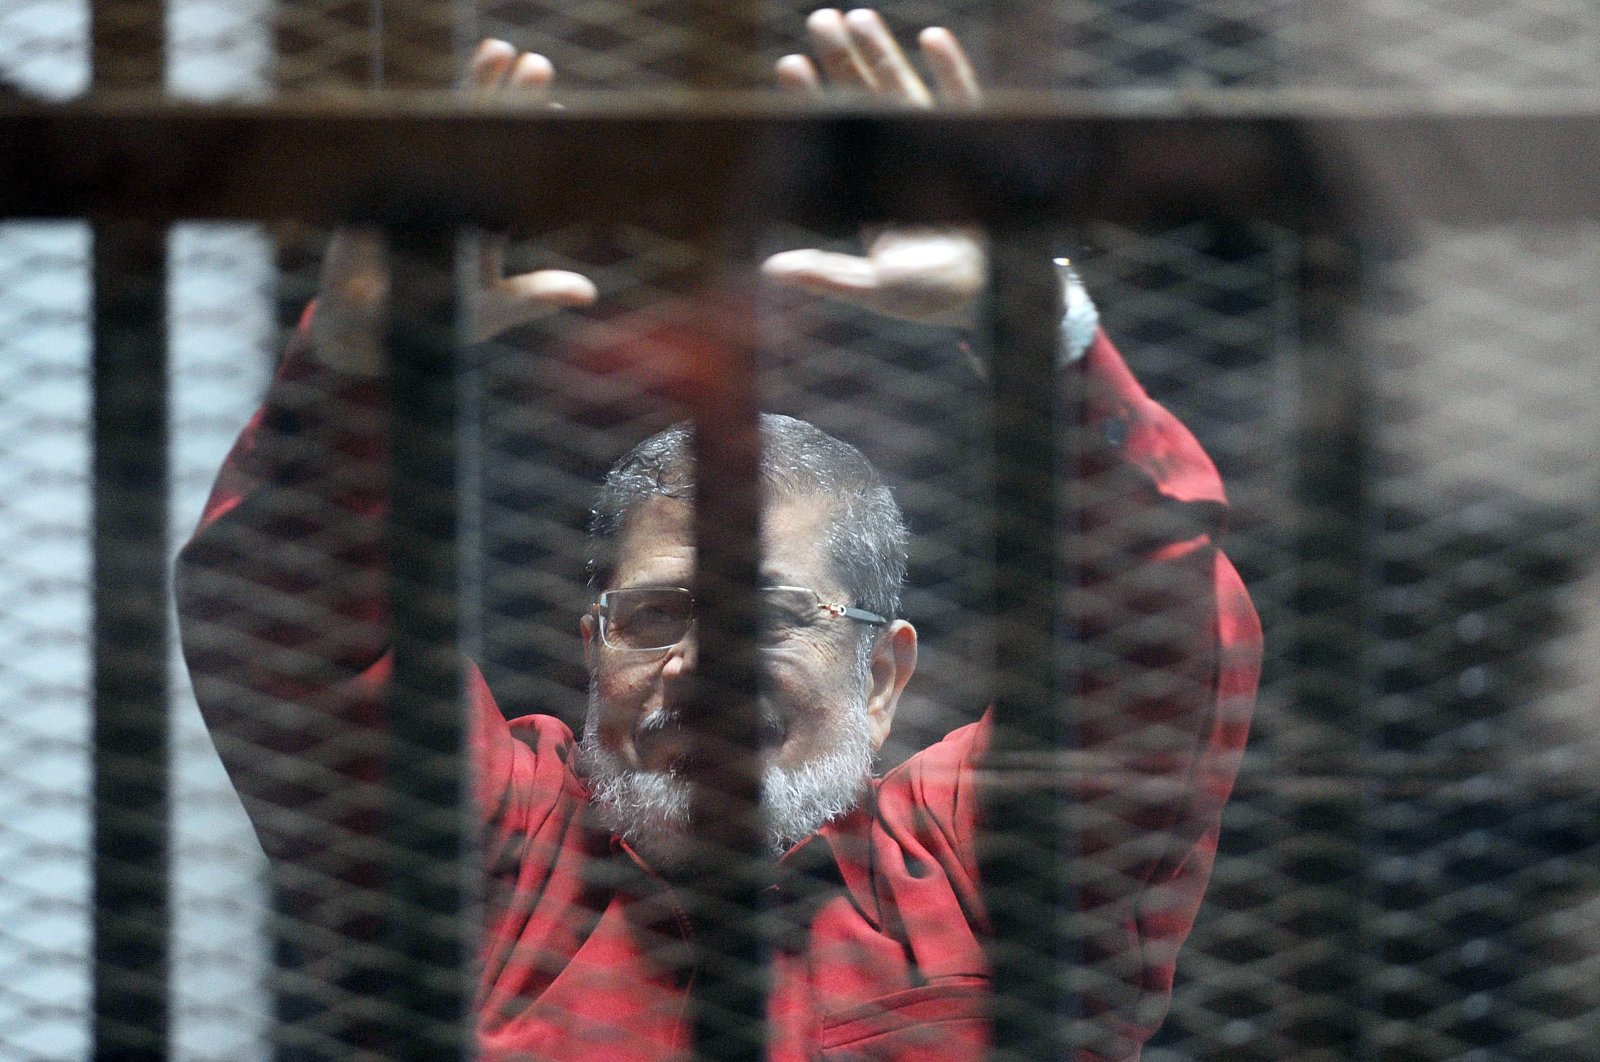 Egypt's first democratically elected President Mohammed Morsi, wearing a red uniform, stands behind bars during his trial in Cairo, June 21, 2015. (AFP Photo)